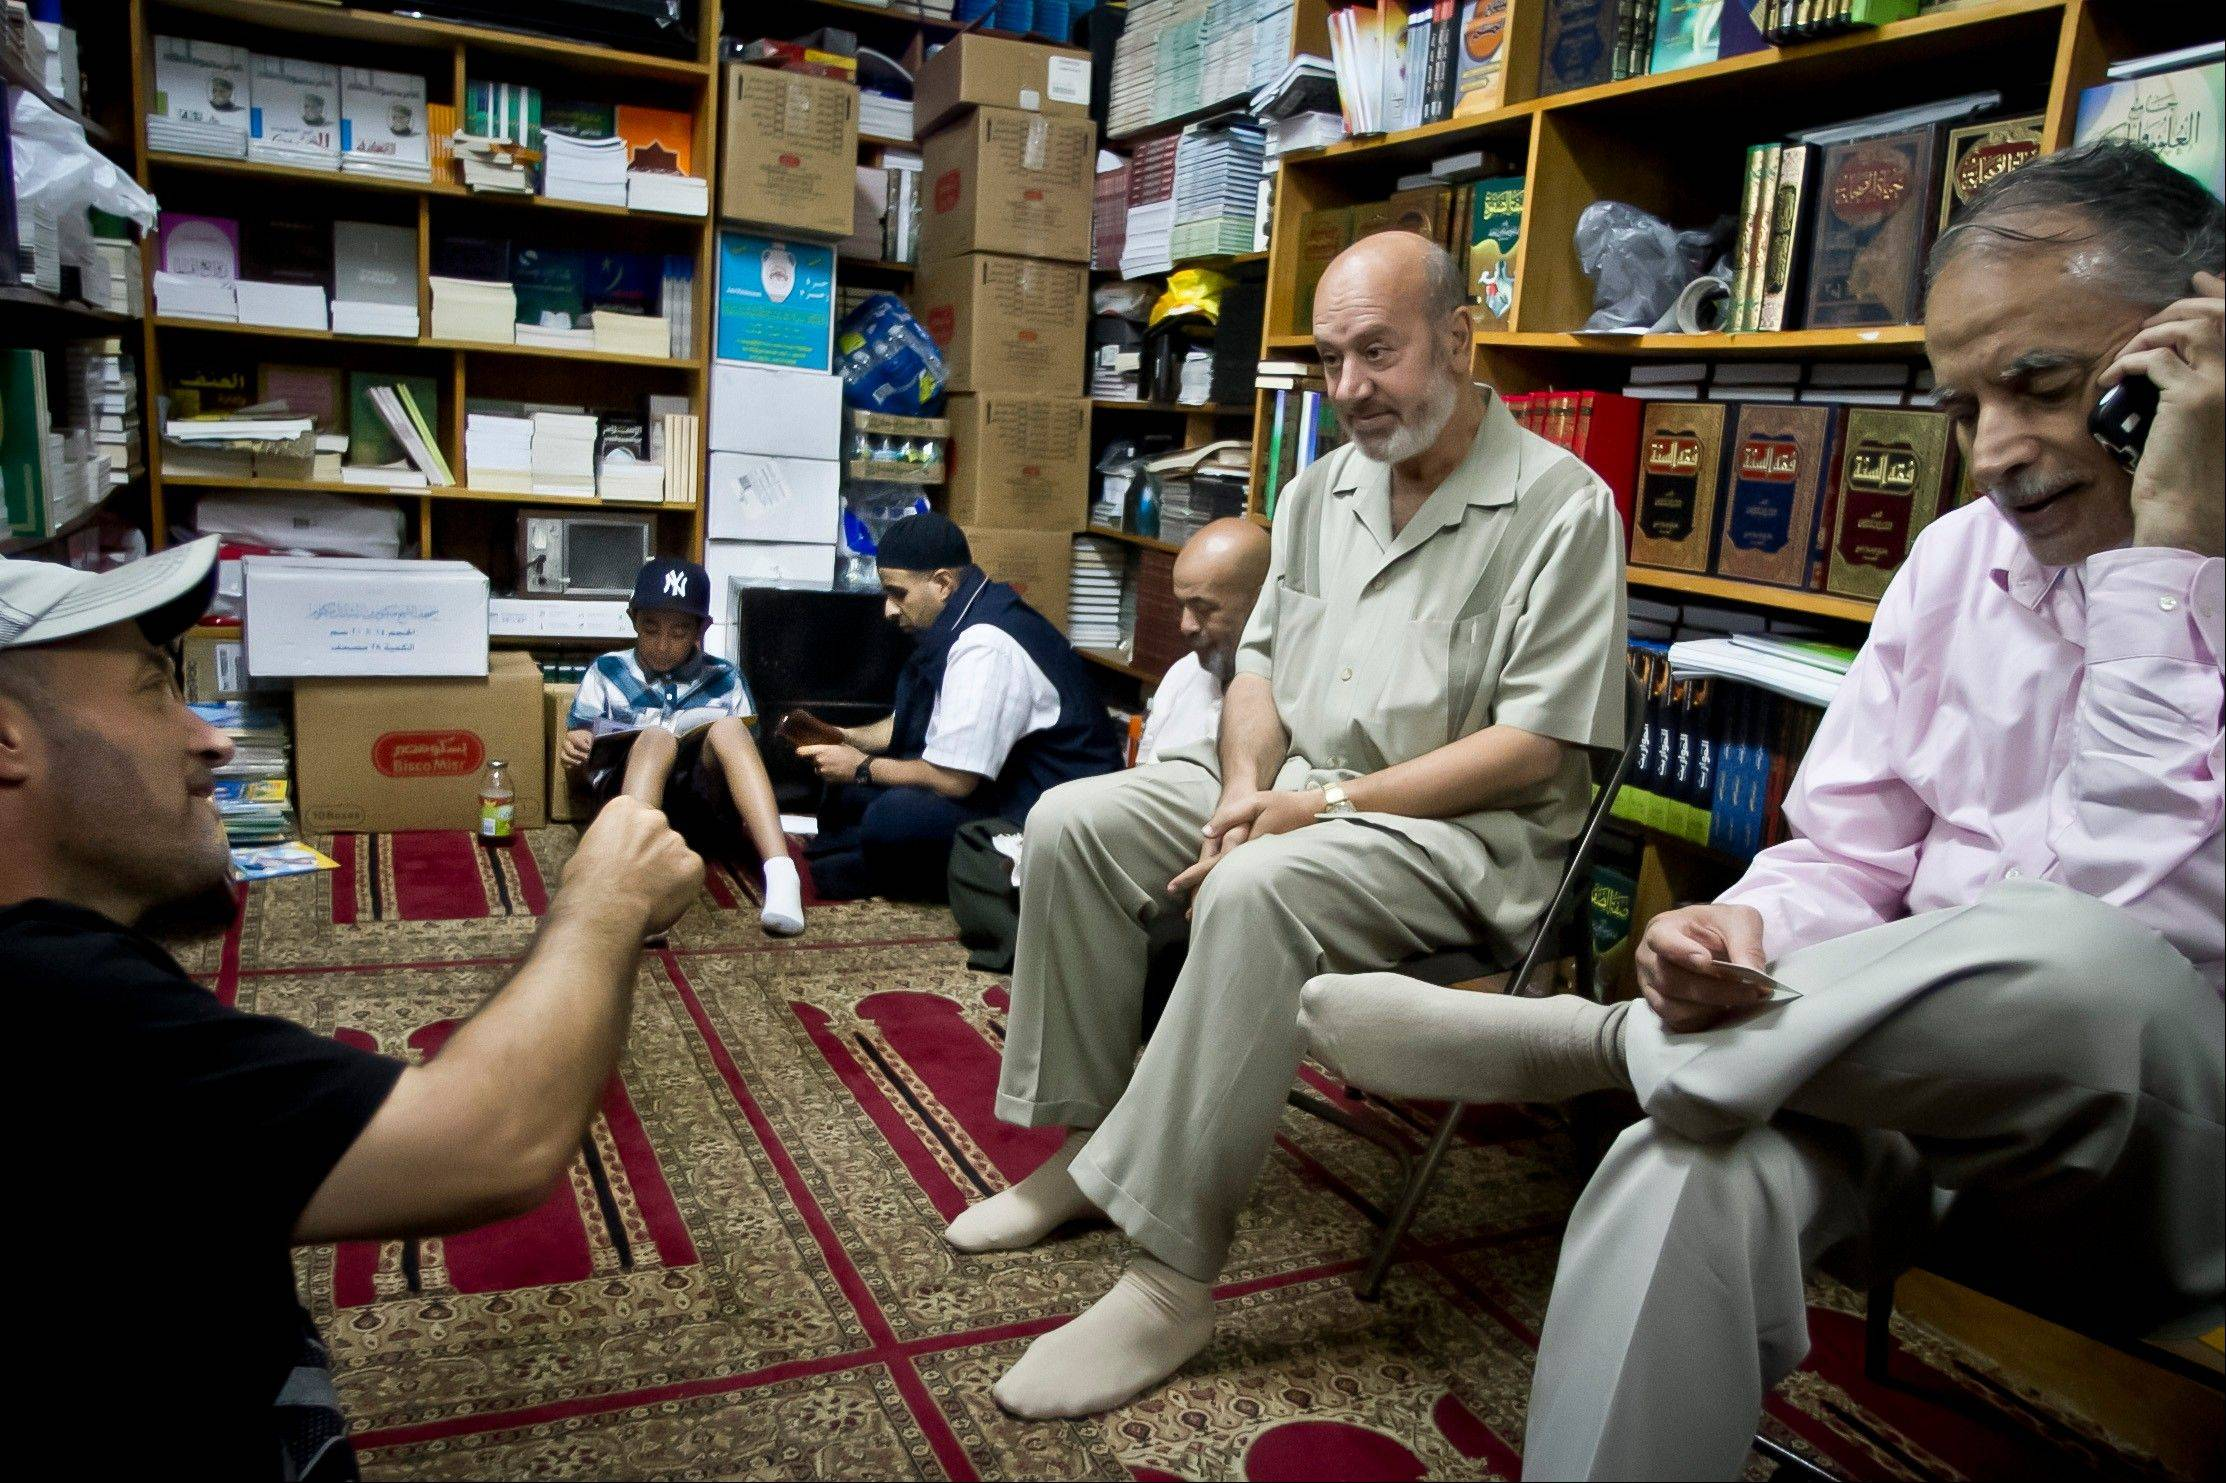 Zein Rimawi, 59, second from right, a leader and founder of the Islamic Society of Bay Ridge and mosque, meet with members in his office before a Jumu�ah prayer service at the mosque on Friday, Aug. 16, 2013 in Brooklyn, N.Y. The NYPD targeted his mosque as a part of a terrorism enterprise investigation beginning in 2003, spying on it for years. The mosque has never been charged as part of a terrorism conspiracy.